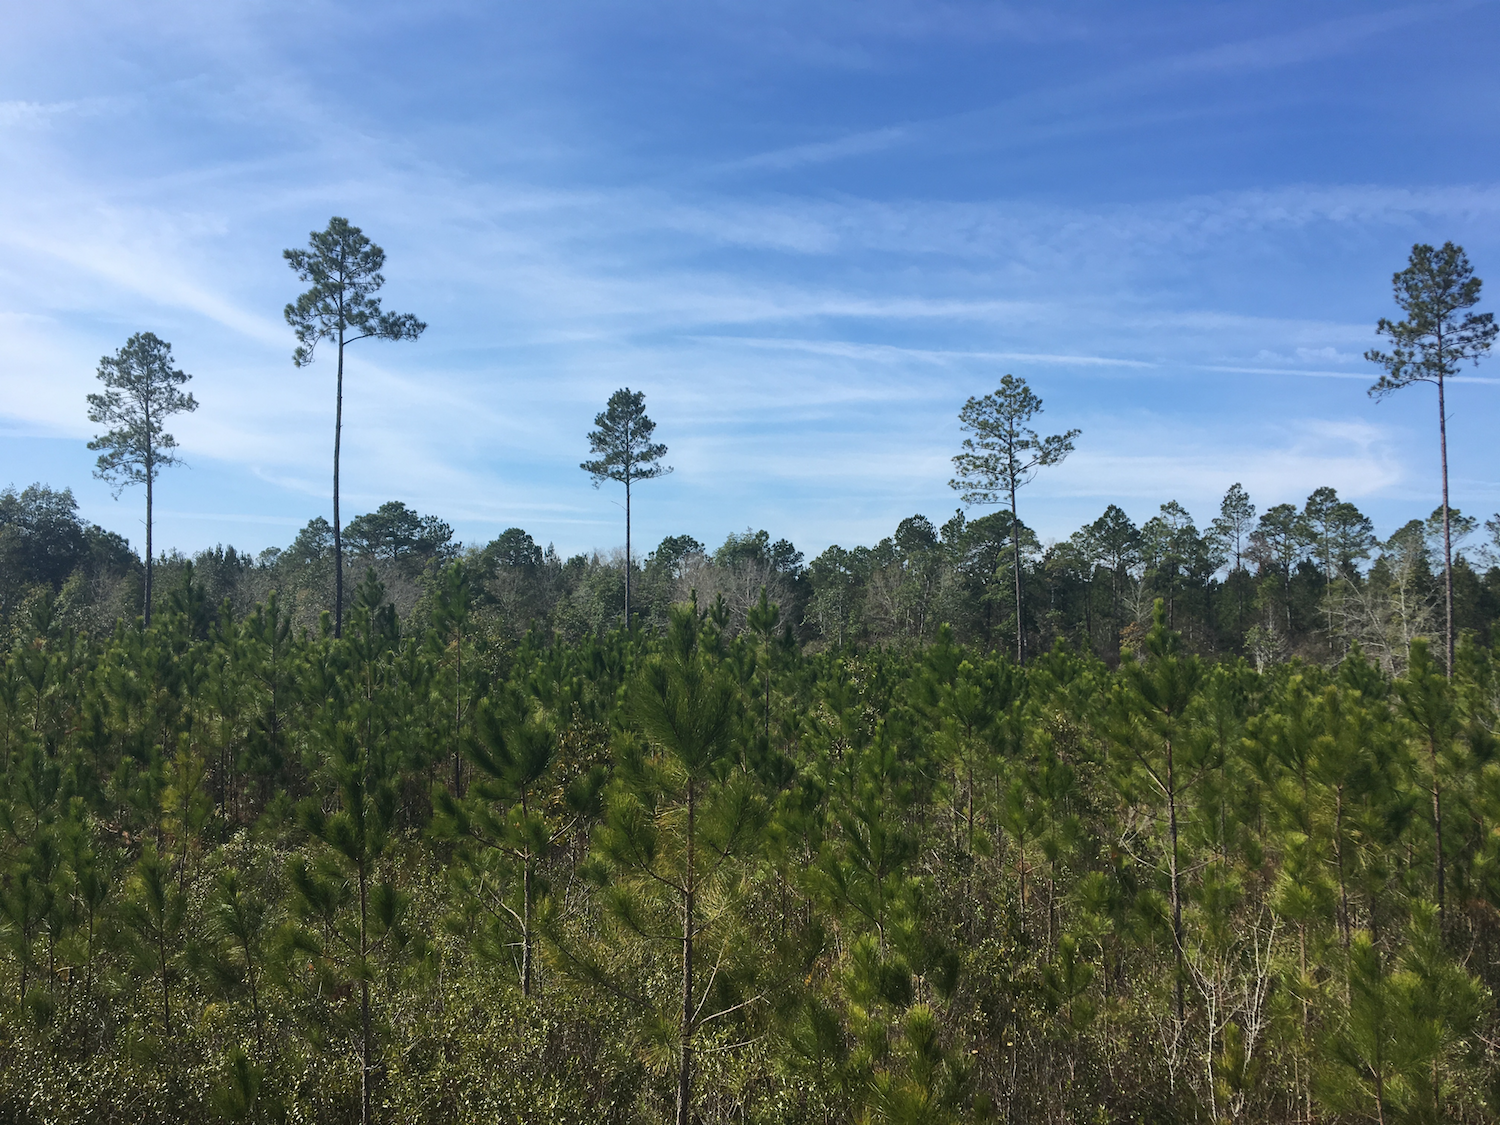 64 Acres Land in Millwood Plantation For Sale